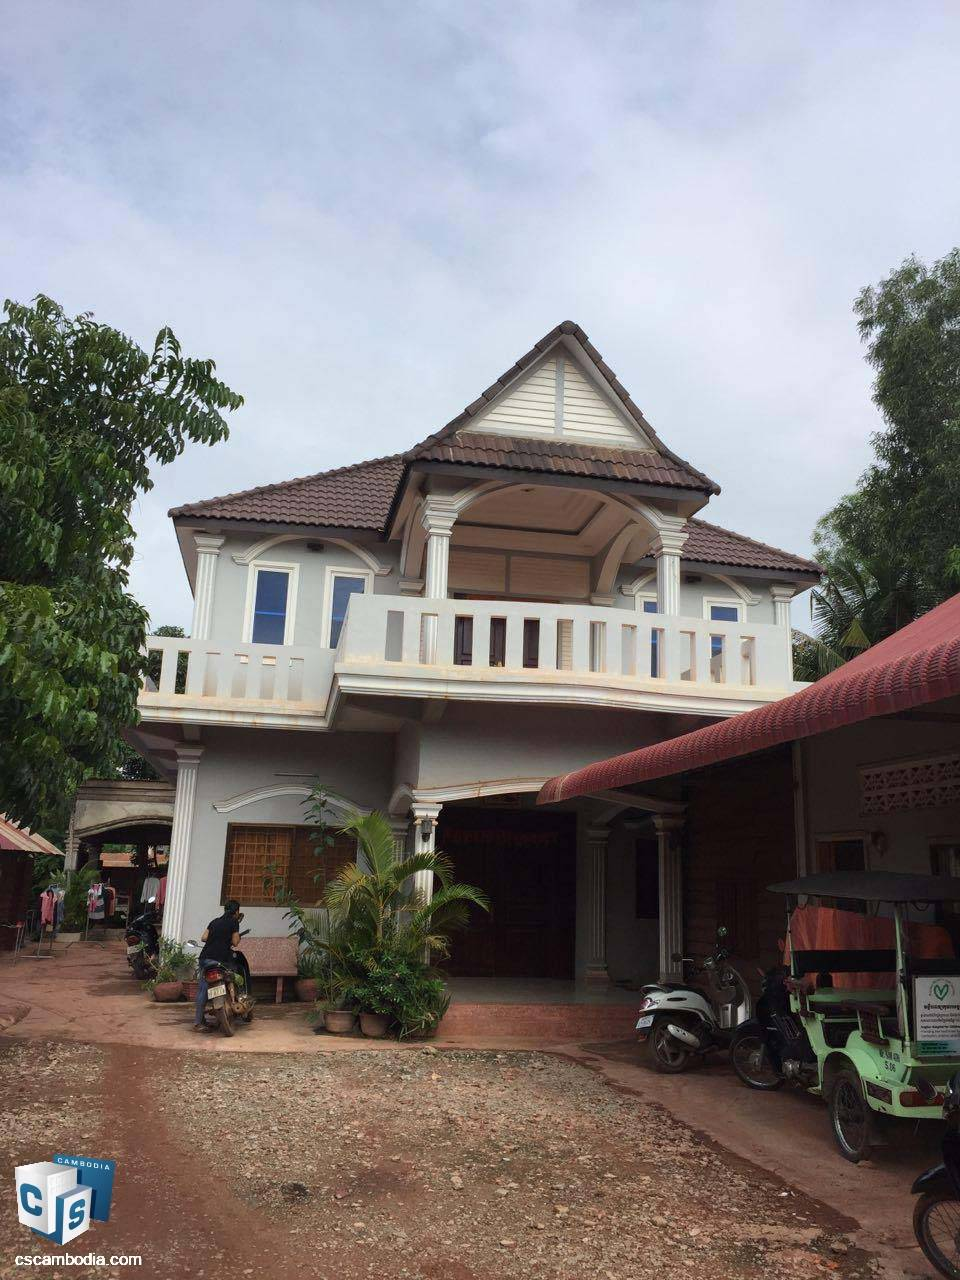 6 Bedroom House – For Sale – Sala Kanseng Village – Svay Dangkum Commune – Siem Reap